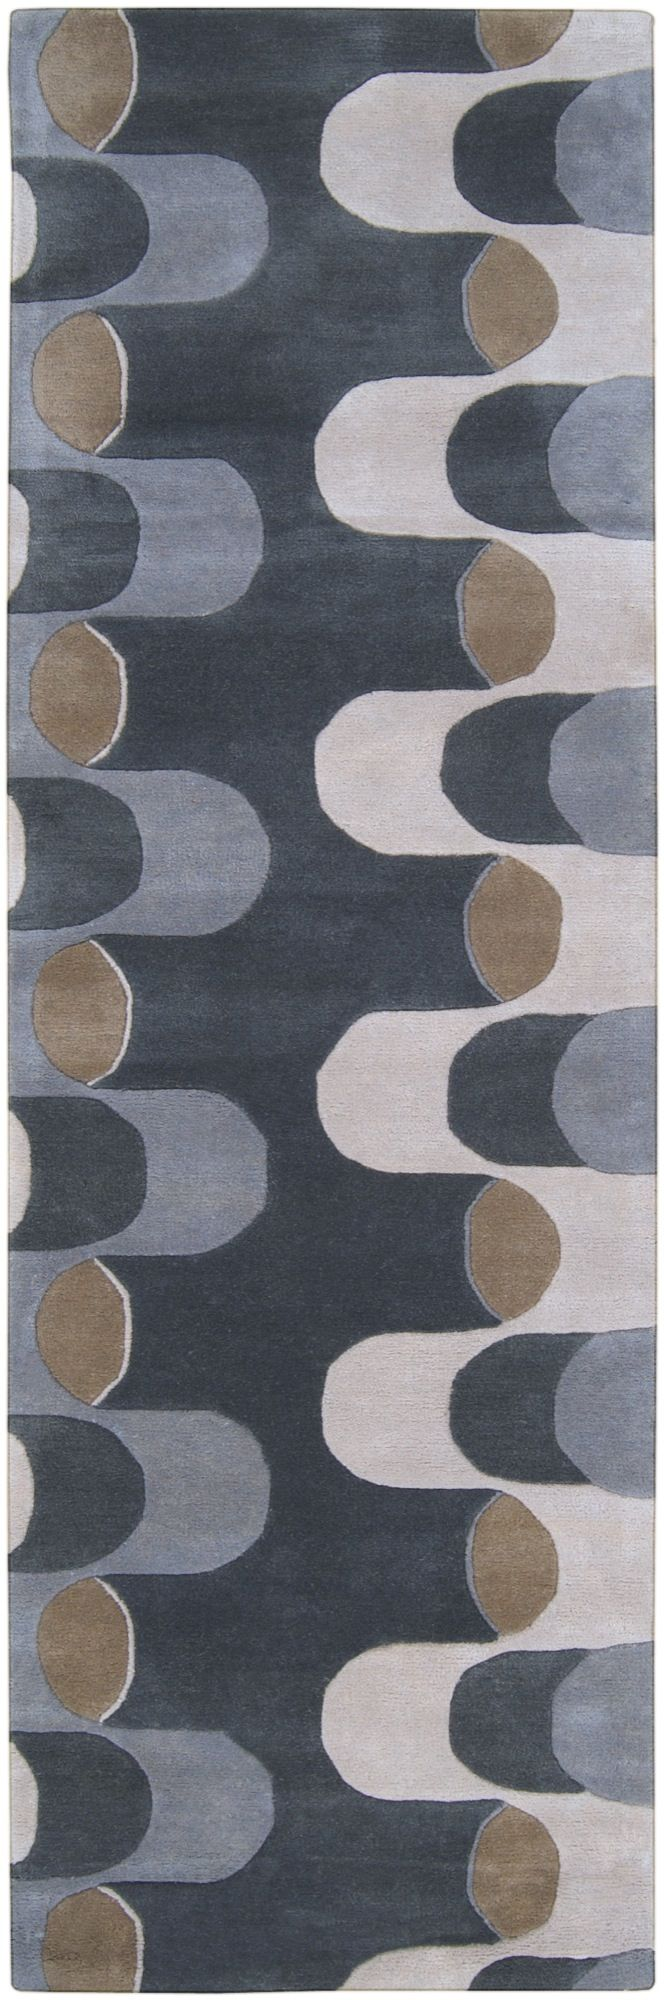 surya dazzle contemporary area rug collection